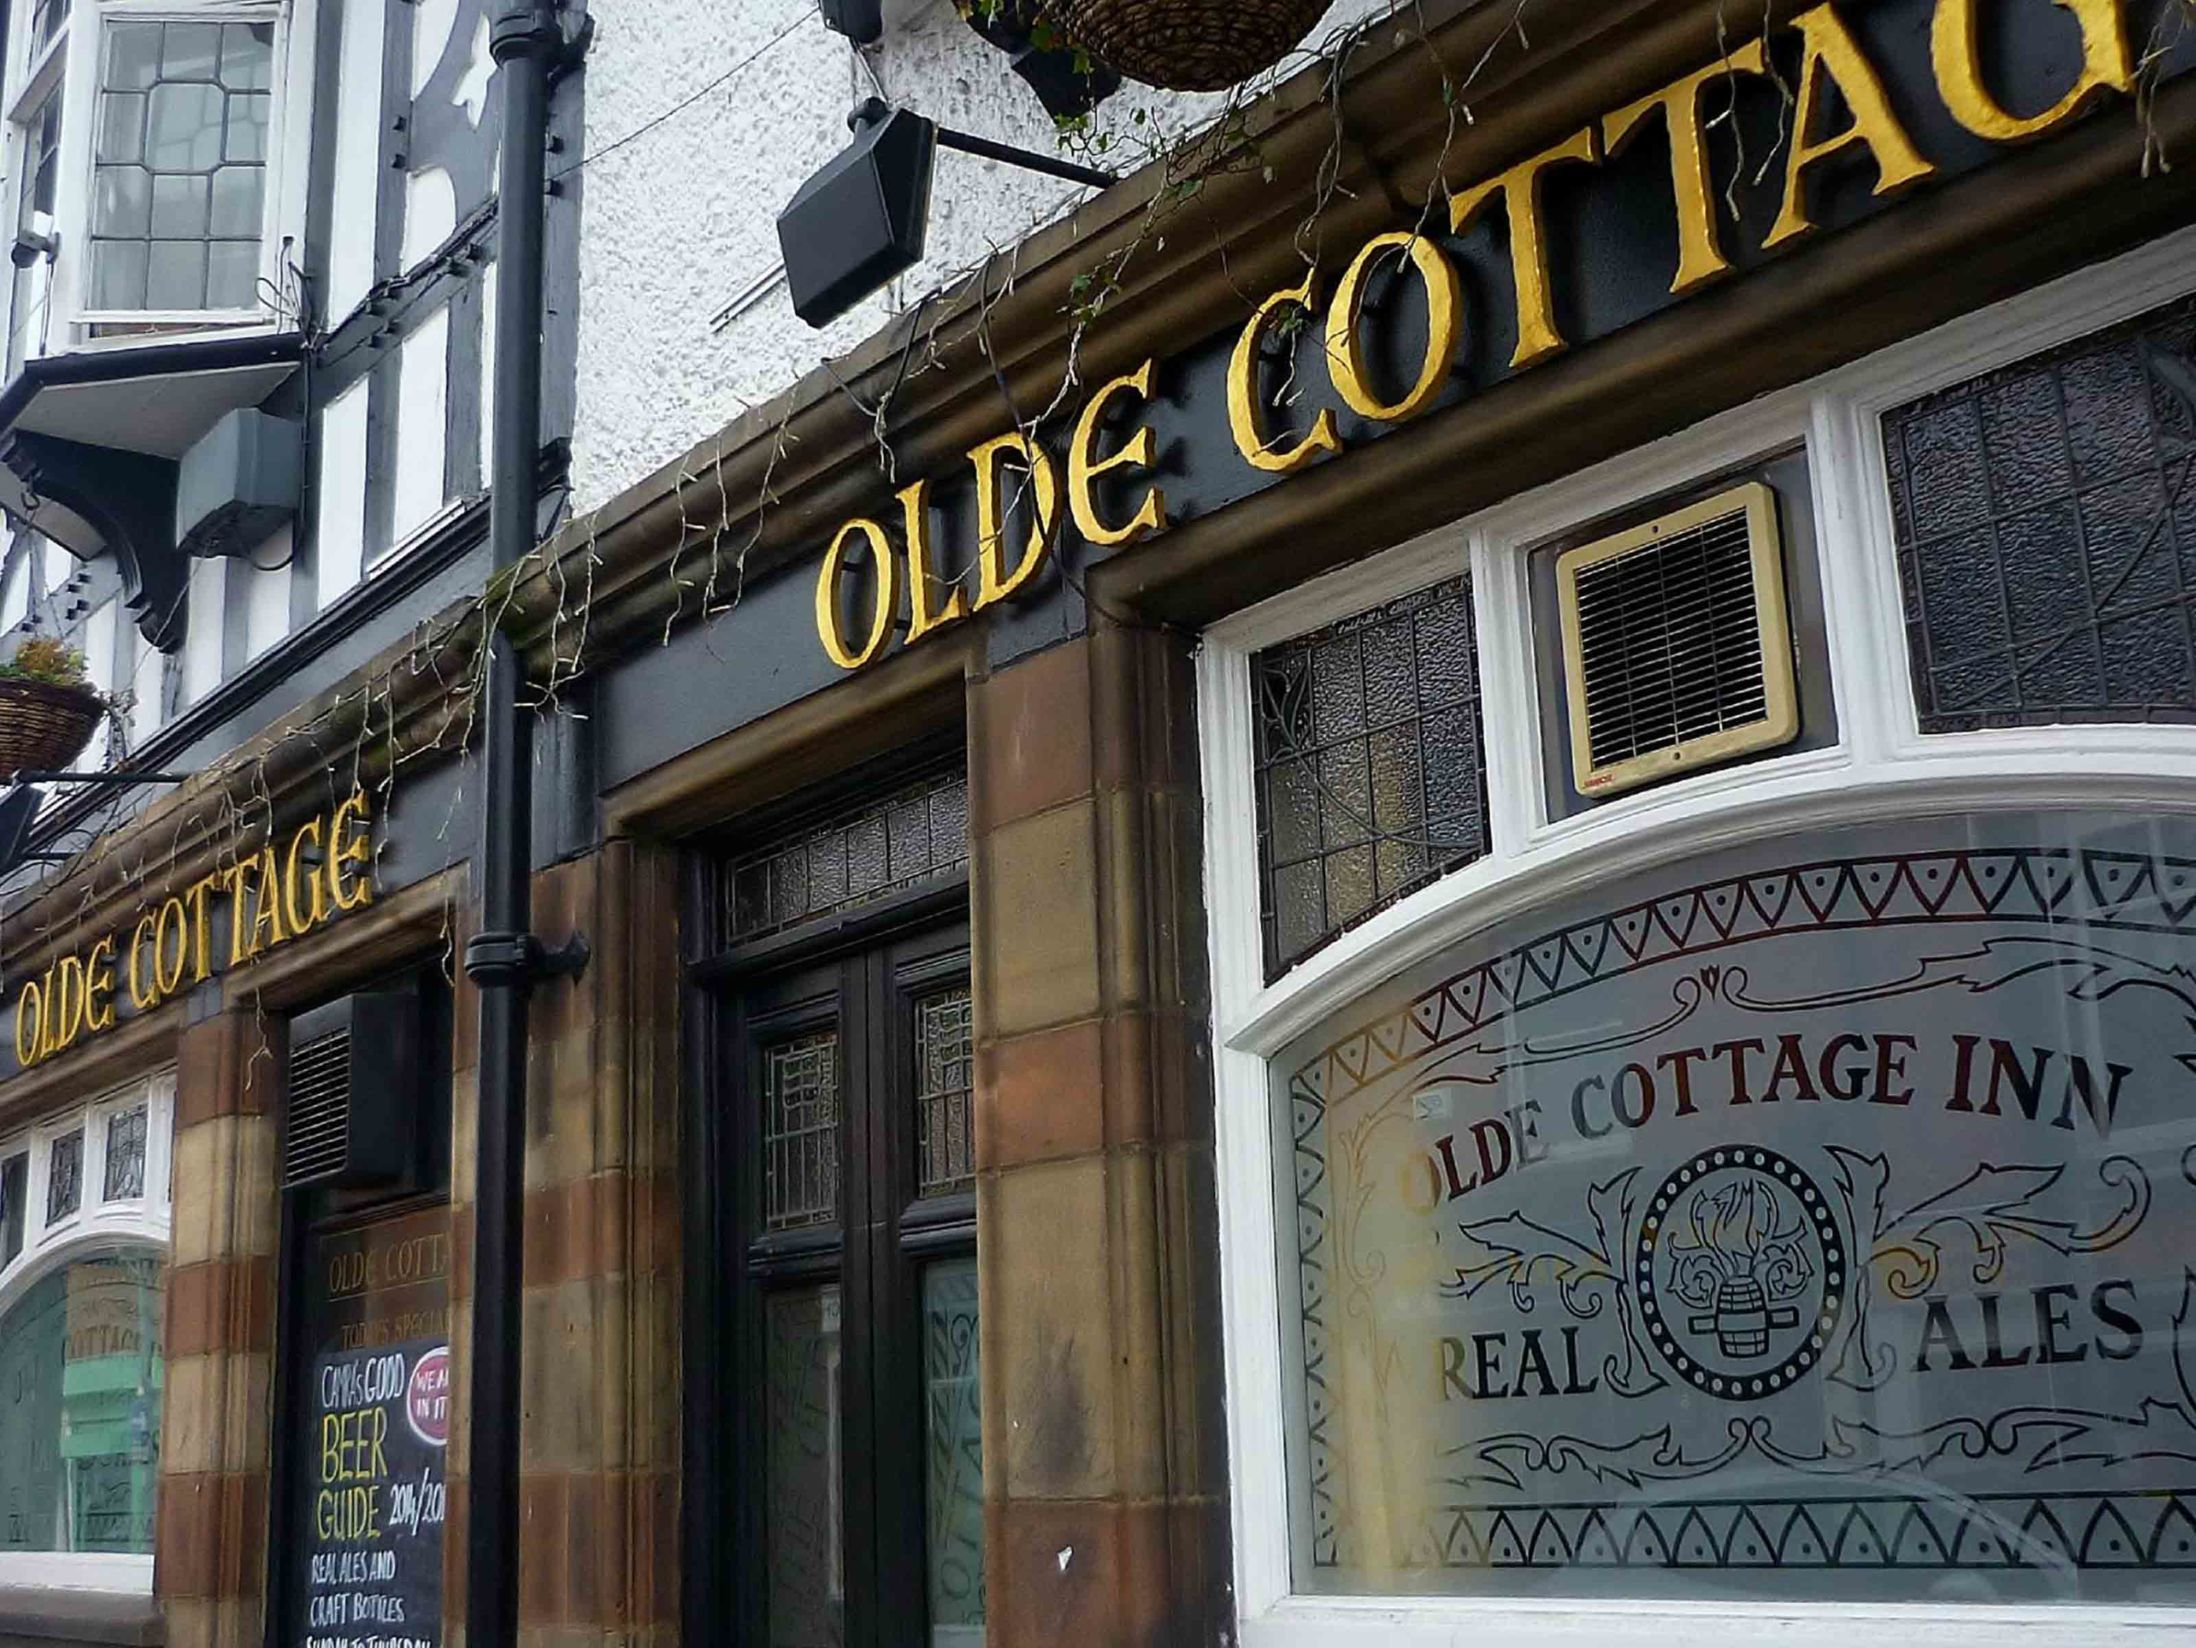 Olde Cottage - Real Ale Pubs in Chester